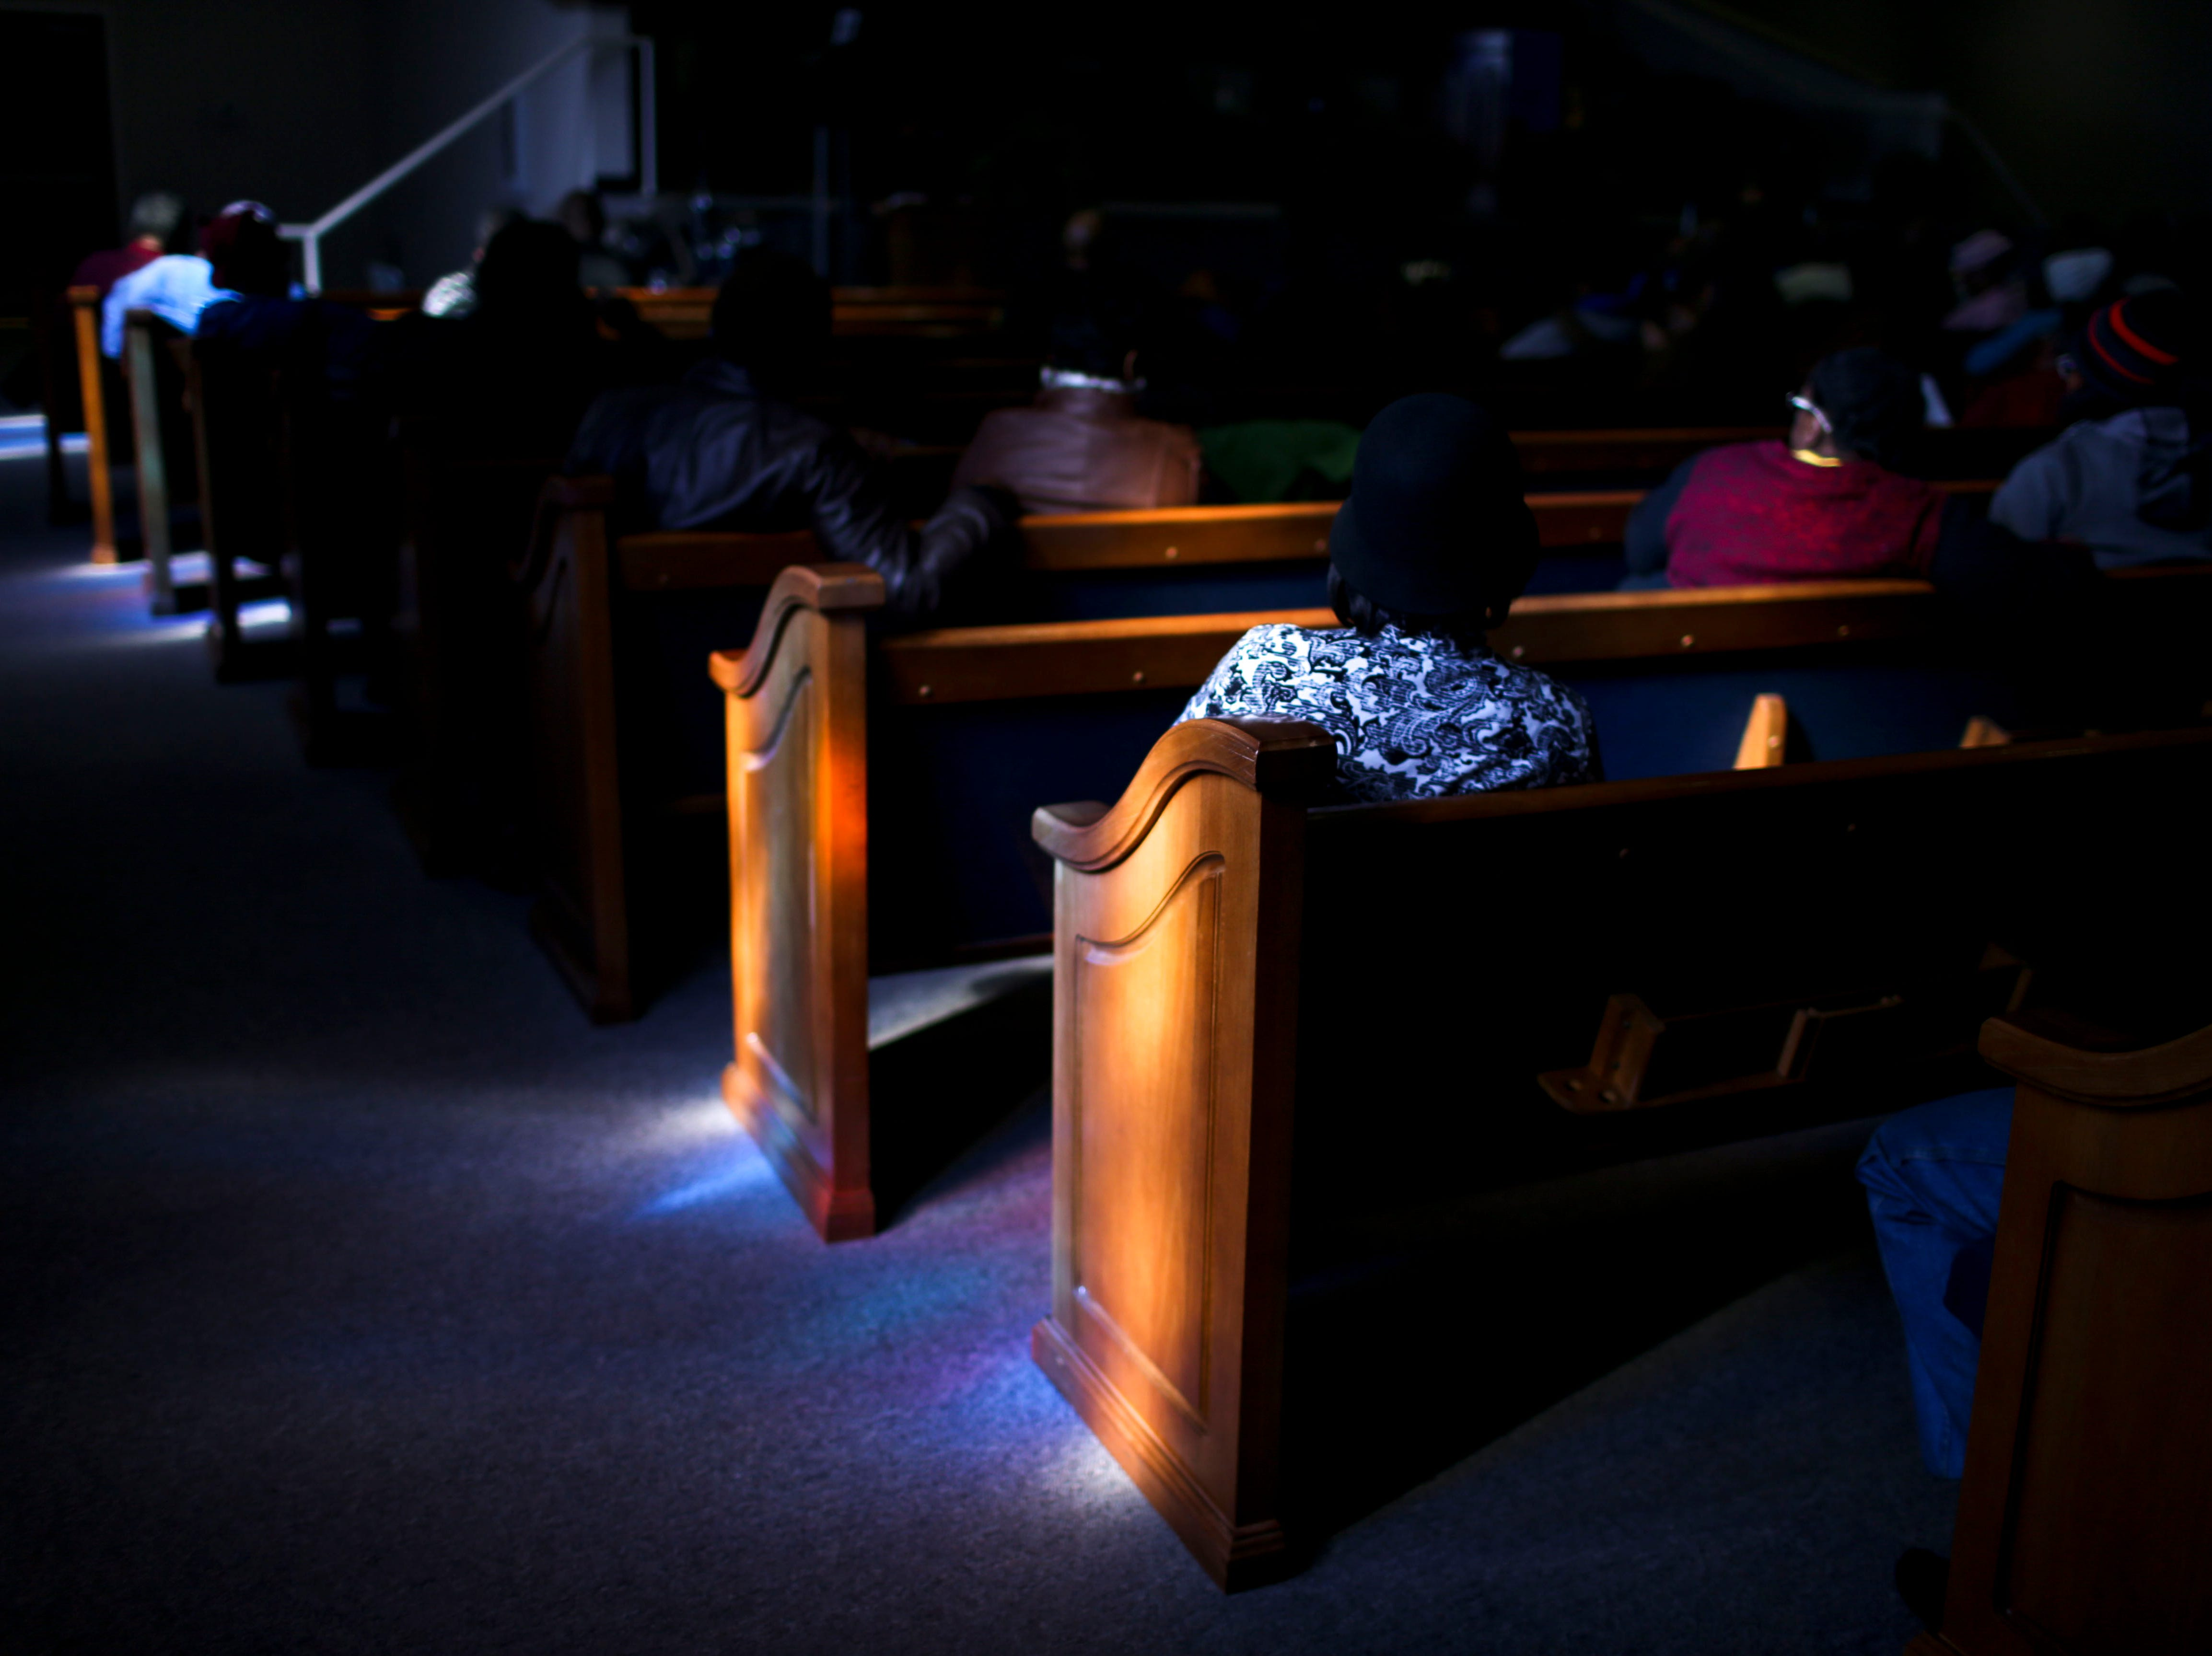 Lovett Brooks sits in a church pew and listens to speakers during a service held for Martin Luther King Jr. Day at Mt. Zion Baptist Church in Jackson, Tenn., on Monday, Jan. 21, 2019.